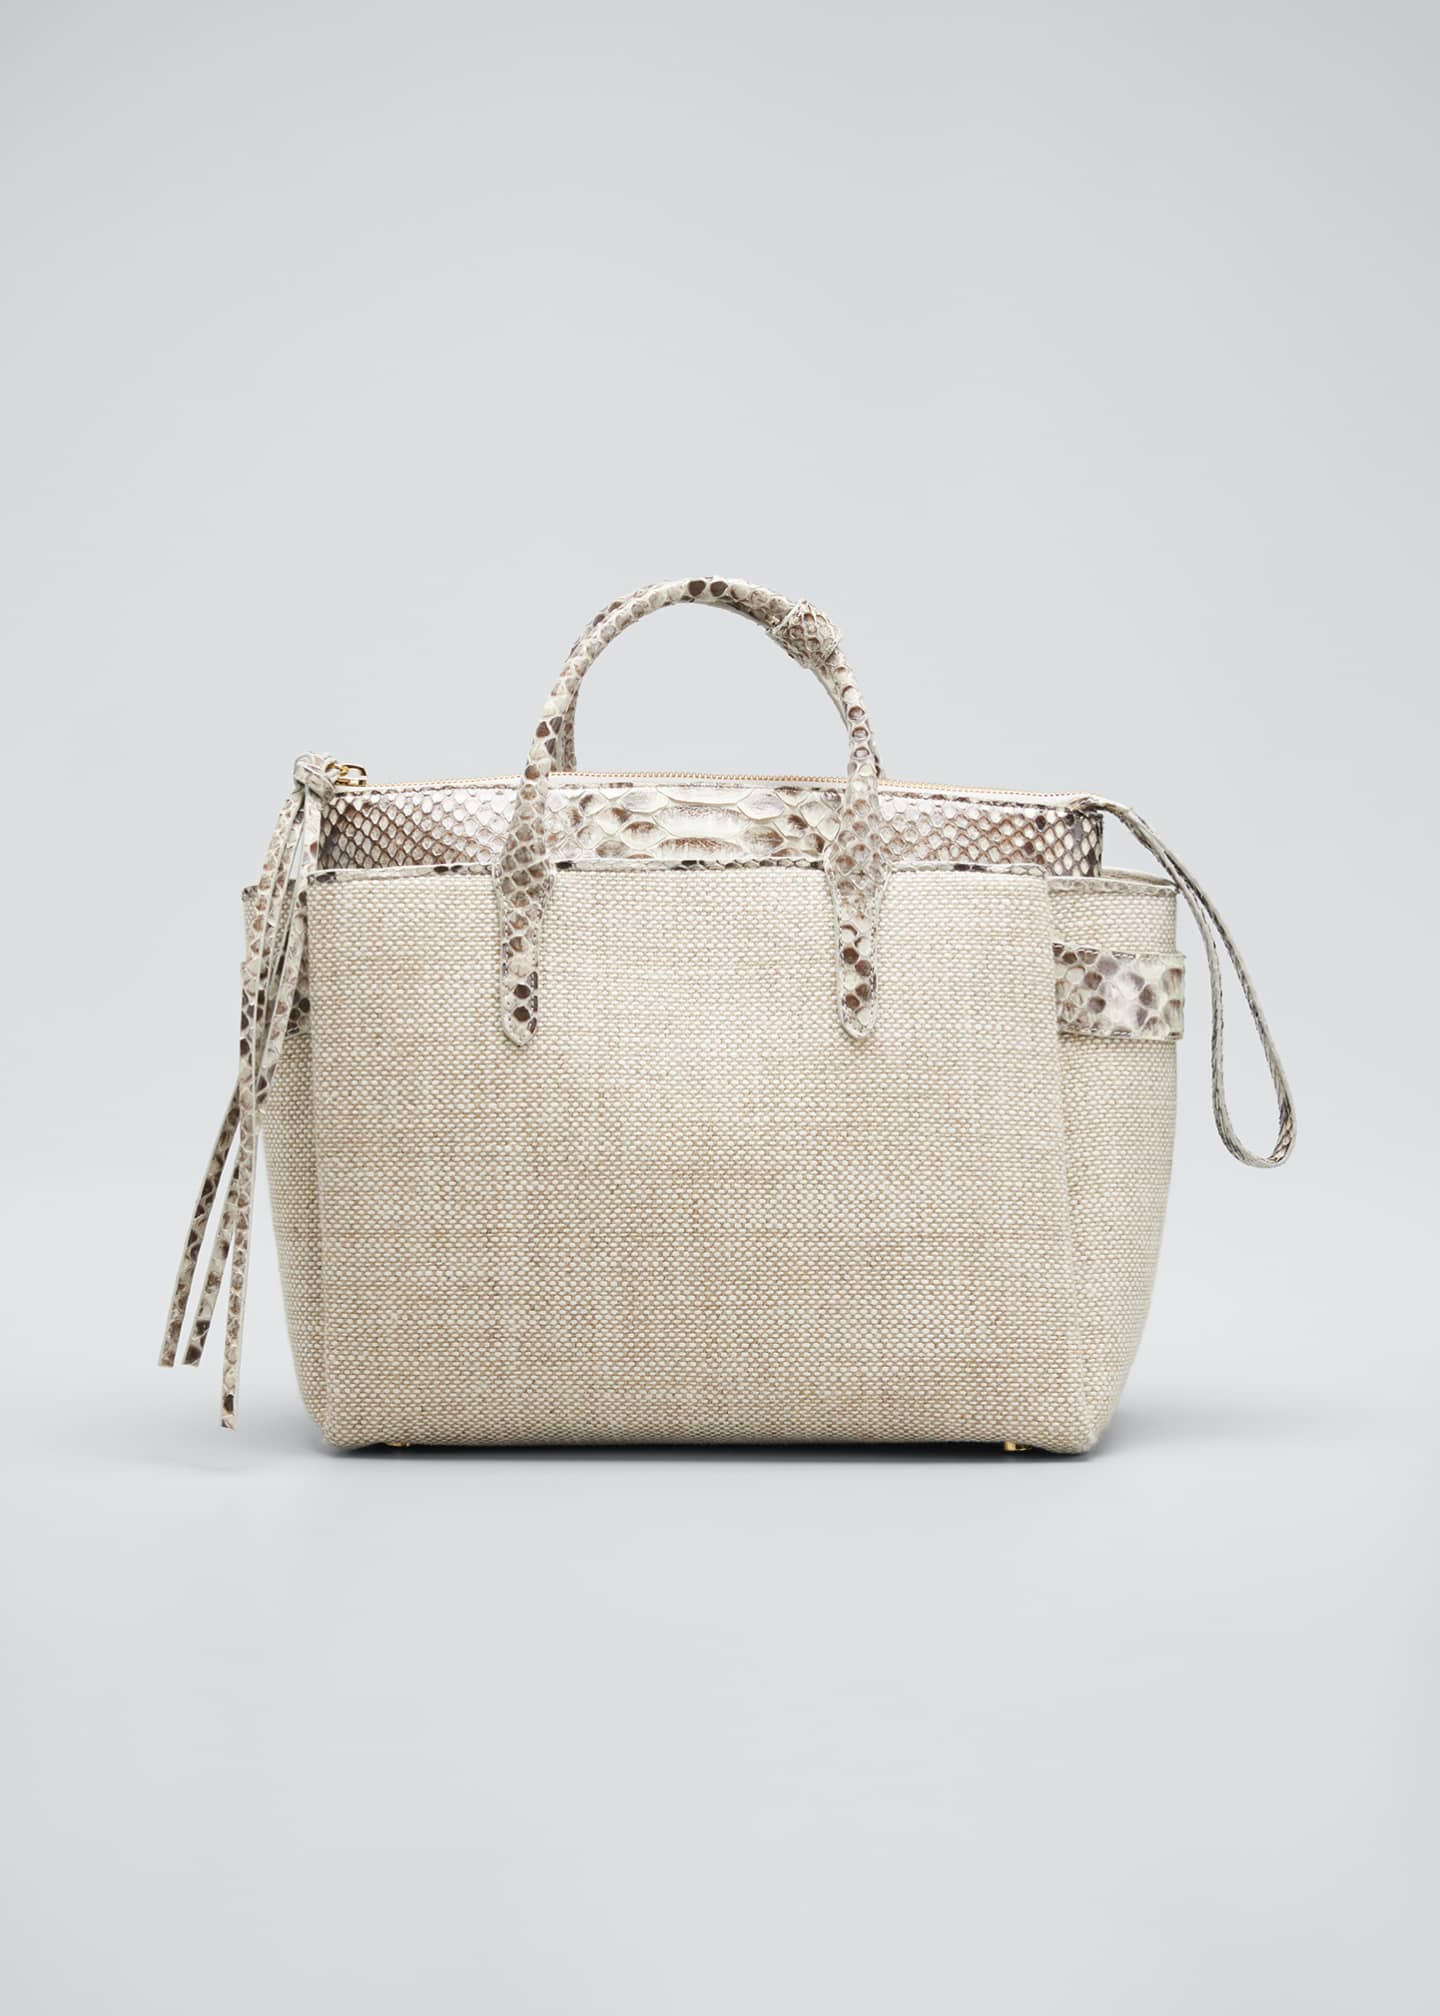 Nancy Gonzalez Cristie Medium Python & Linen Tote